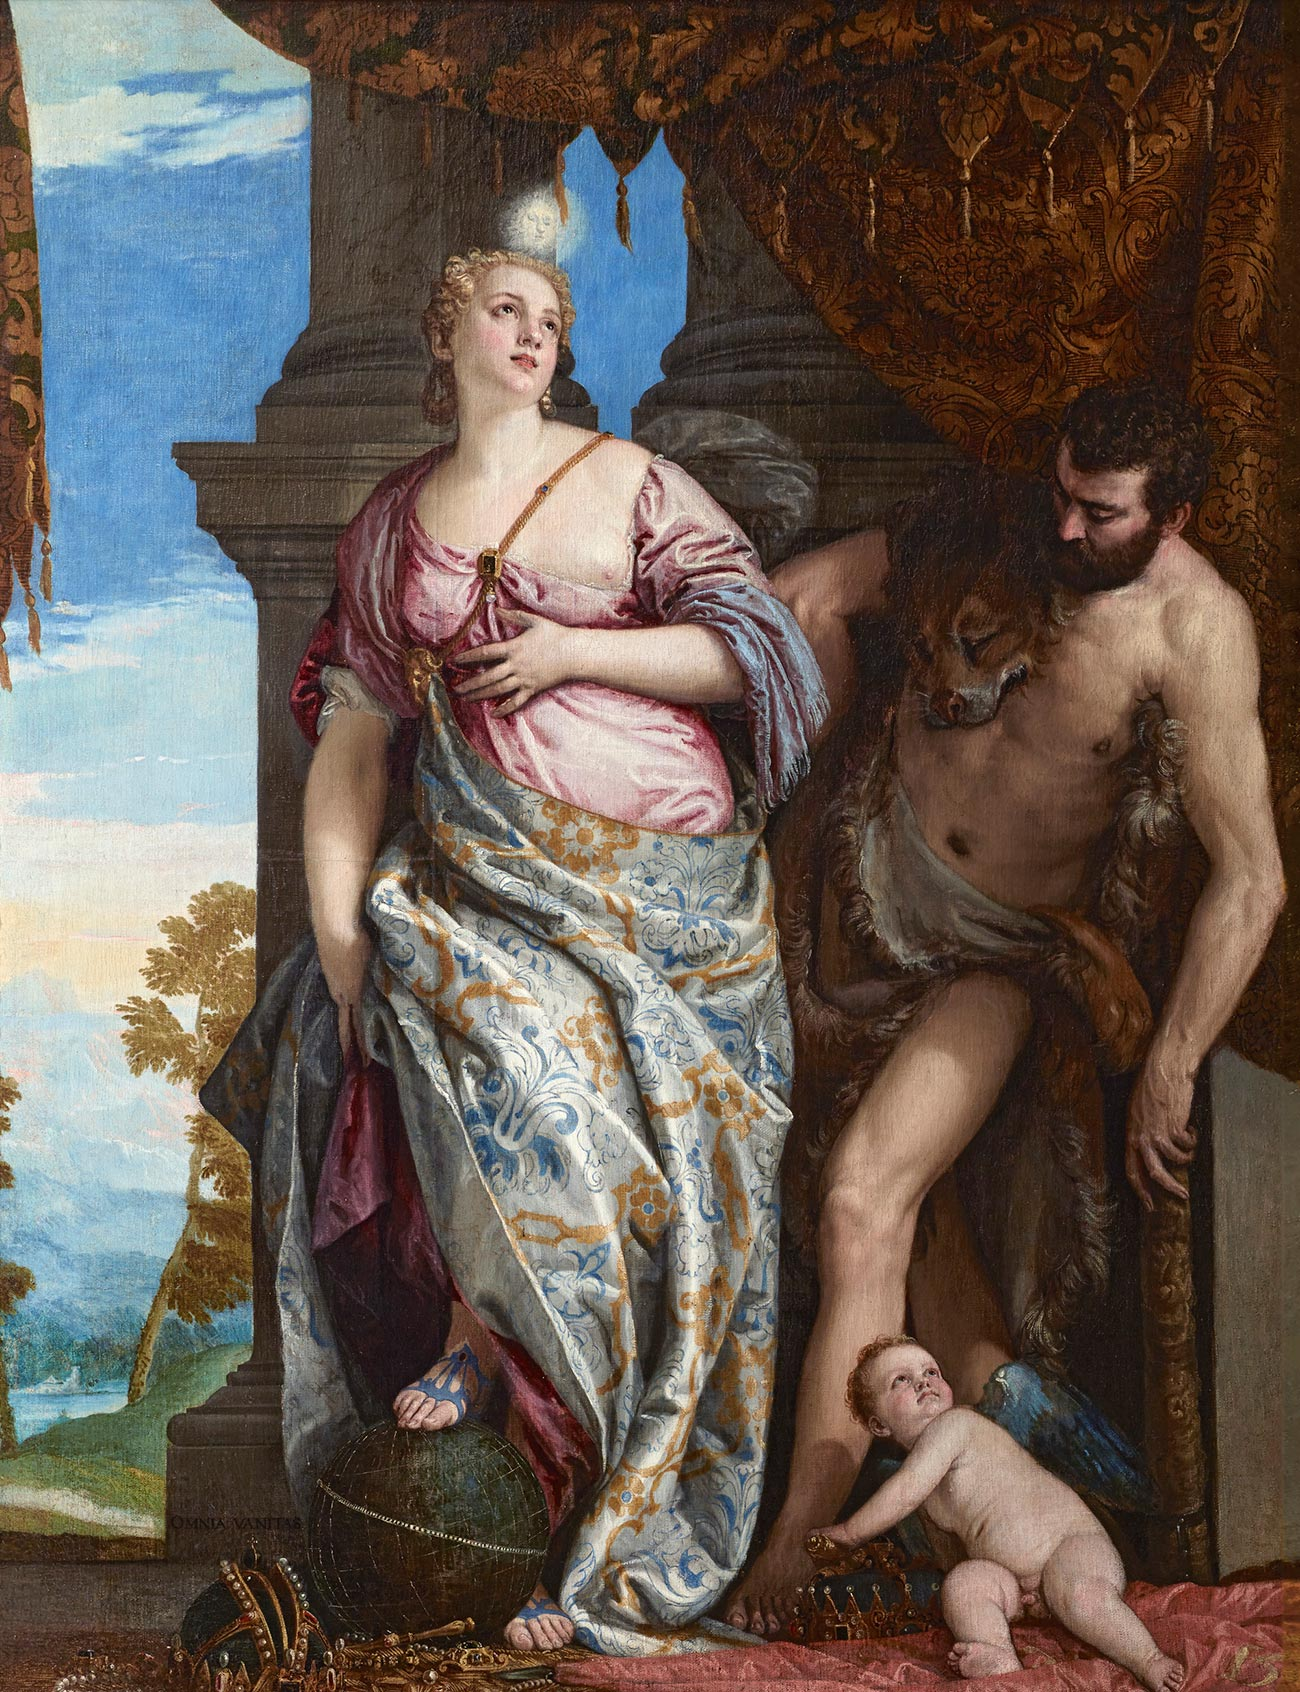 Wisdom is a woman in a pink dress with one bare breast, and a shiny wrap with blue and gold print. Strength is a bearded man in a loincloth with a dead animal over his right shoulder. At their feet is a winged cherub.